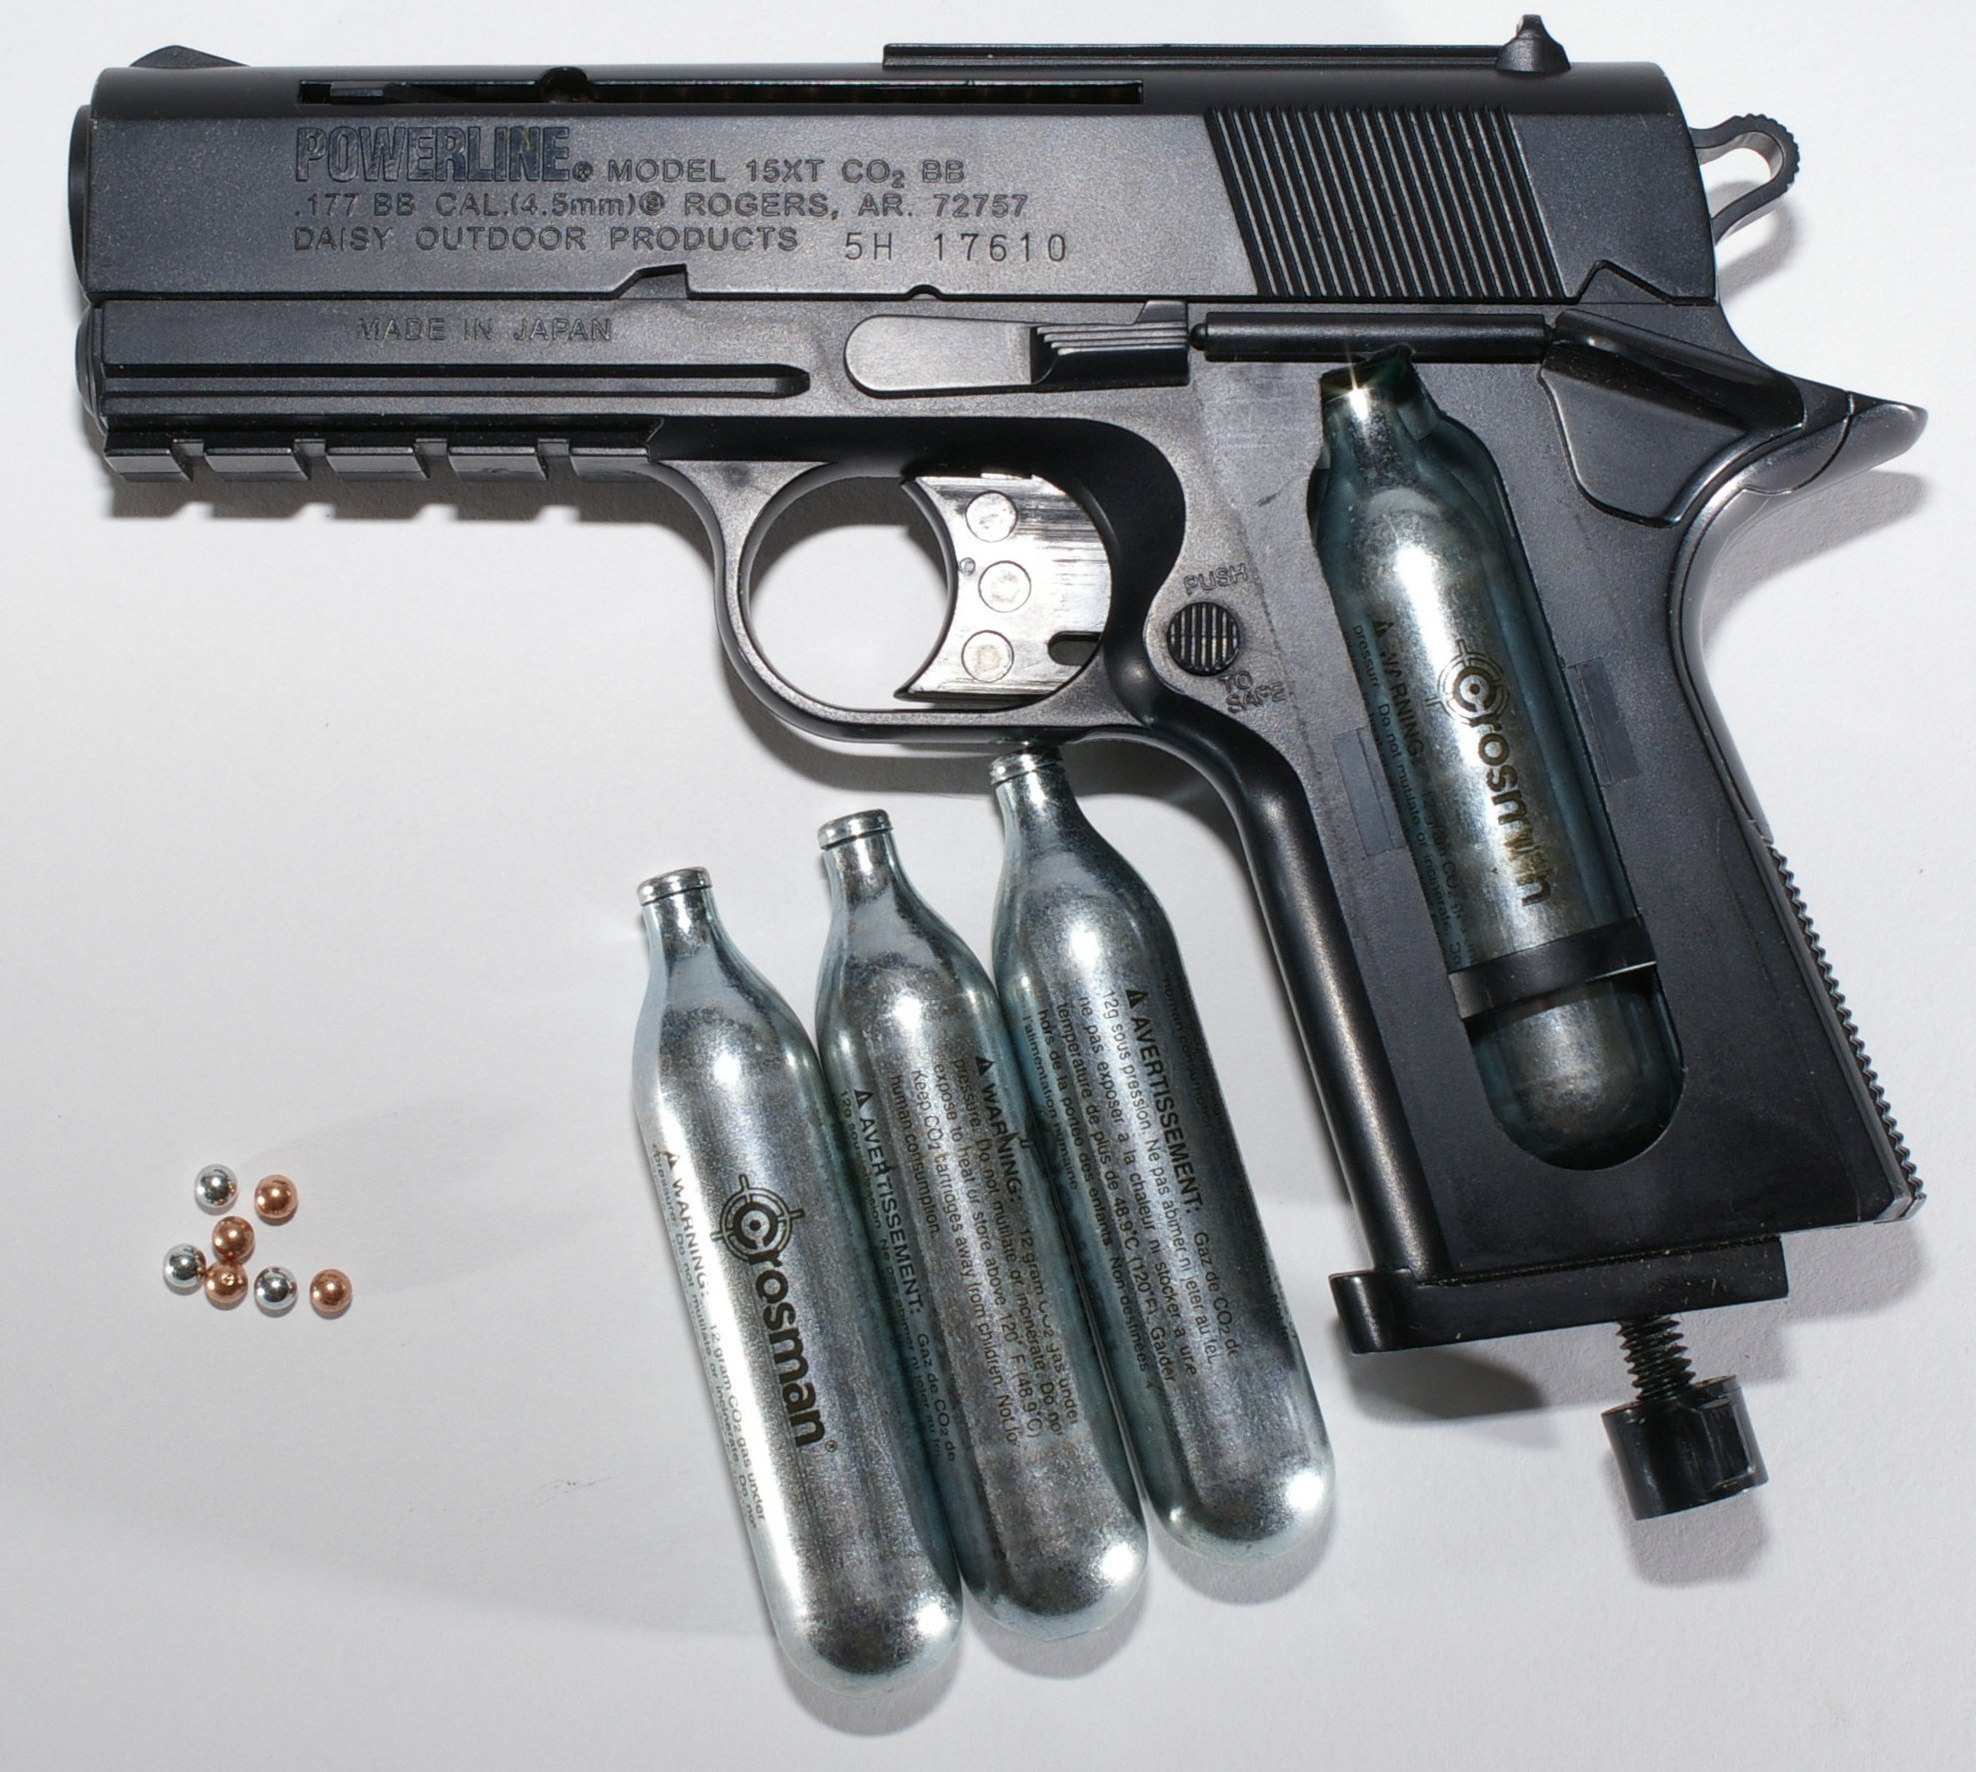 BB gun - The complete information and online sale with free shipping